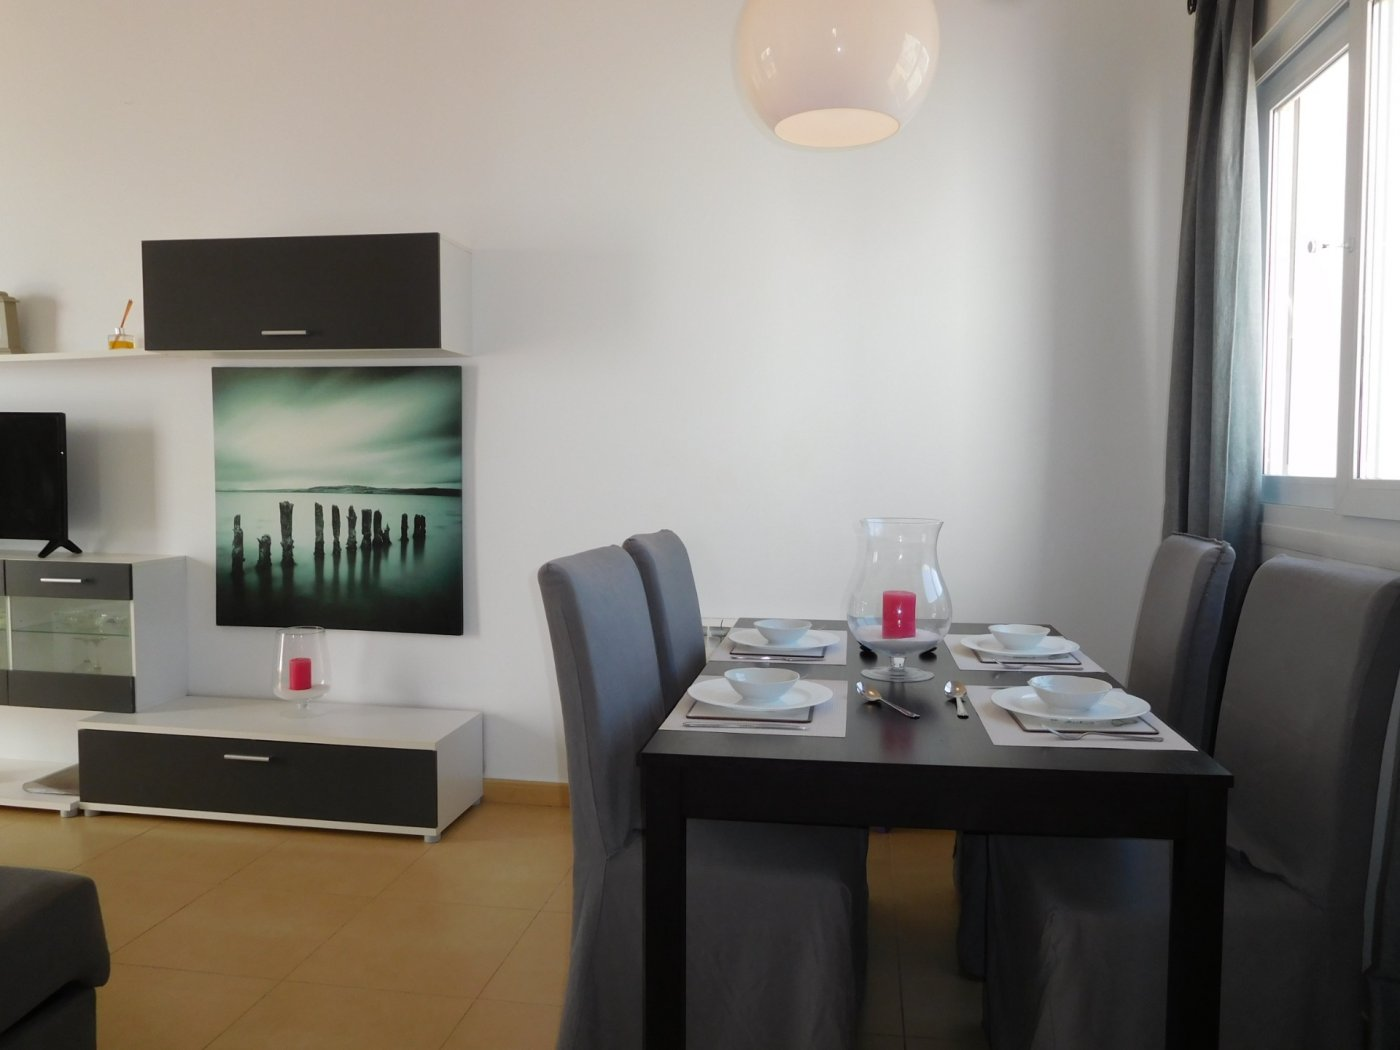 Gallery Image 10 of Casa For rent in Condado De Alhama, Alhama De Murcia With Pool